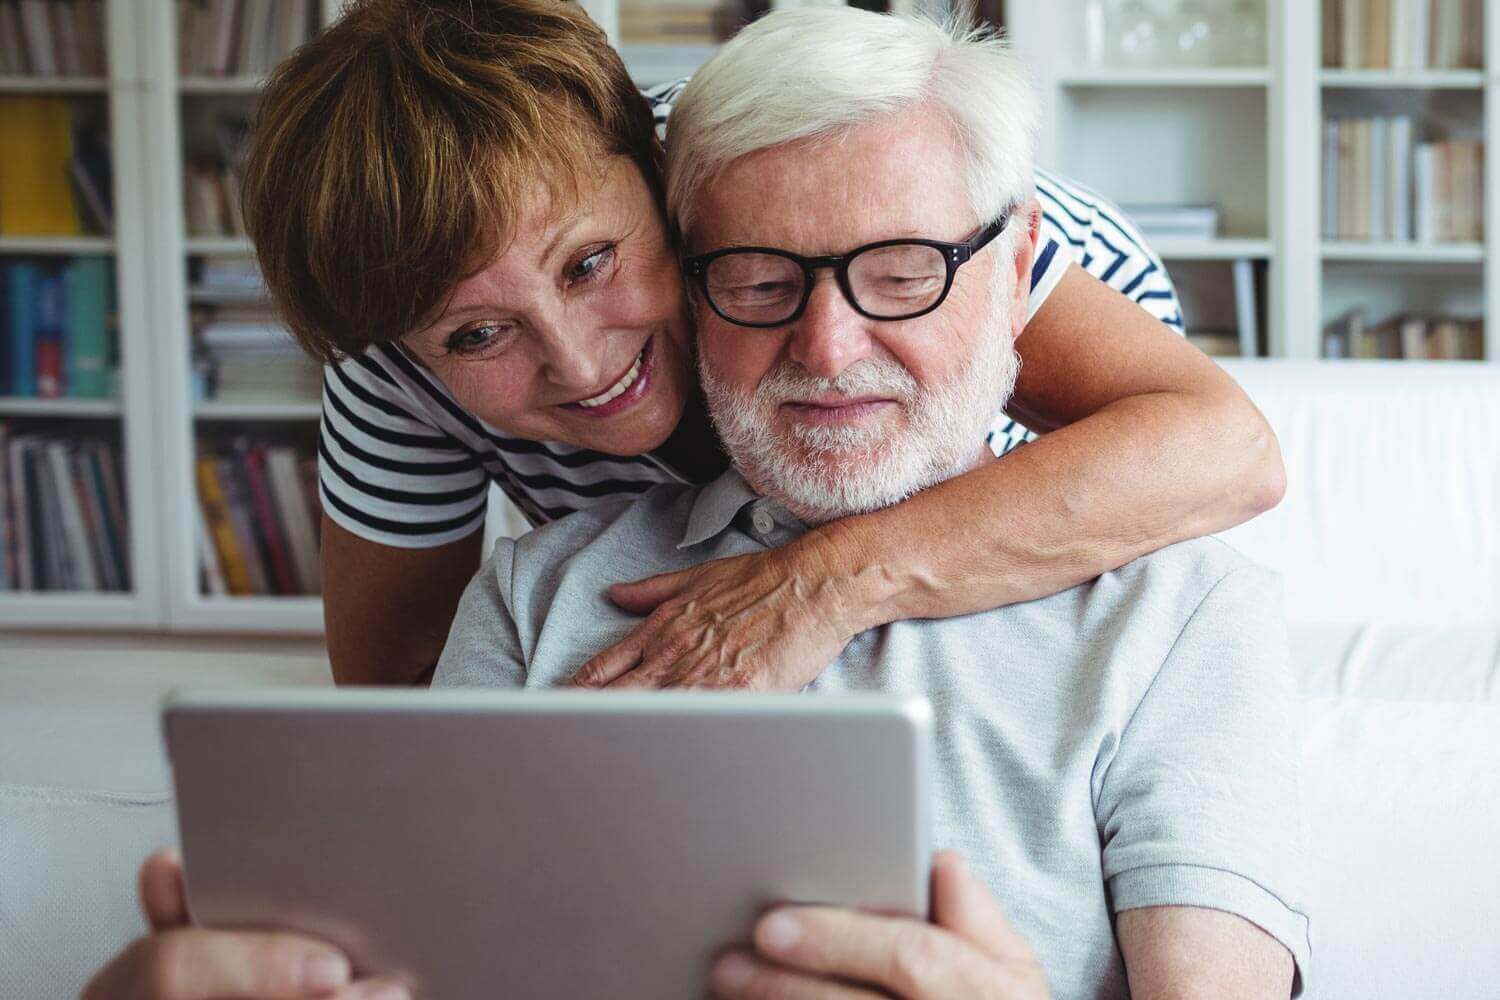 Older Woman and Man Looking a Tablet Computer